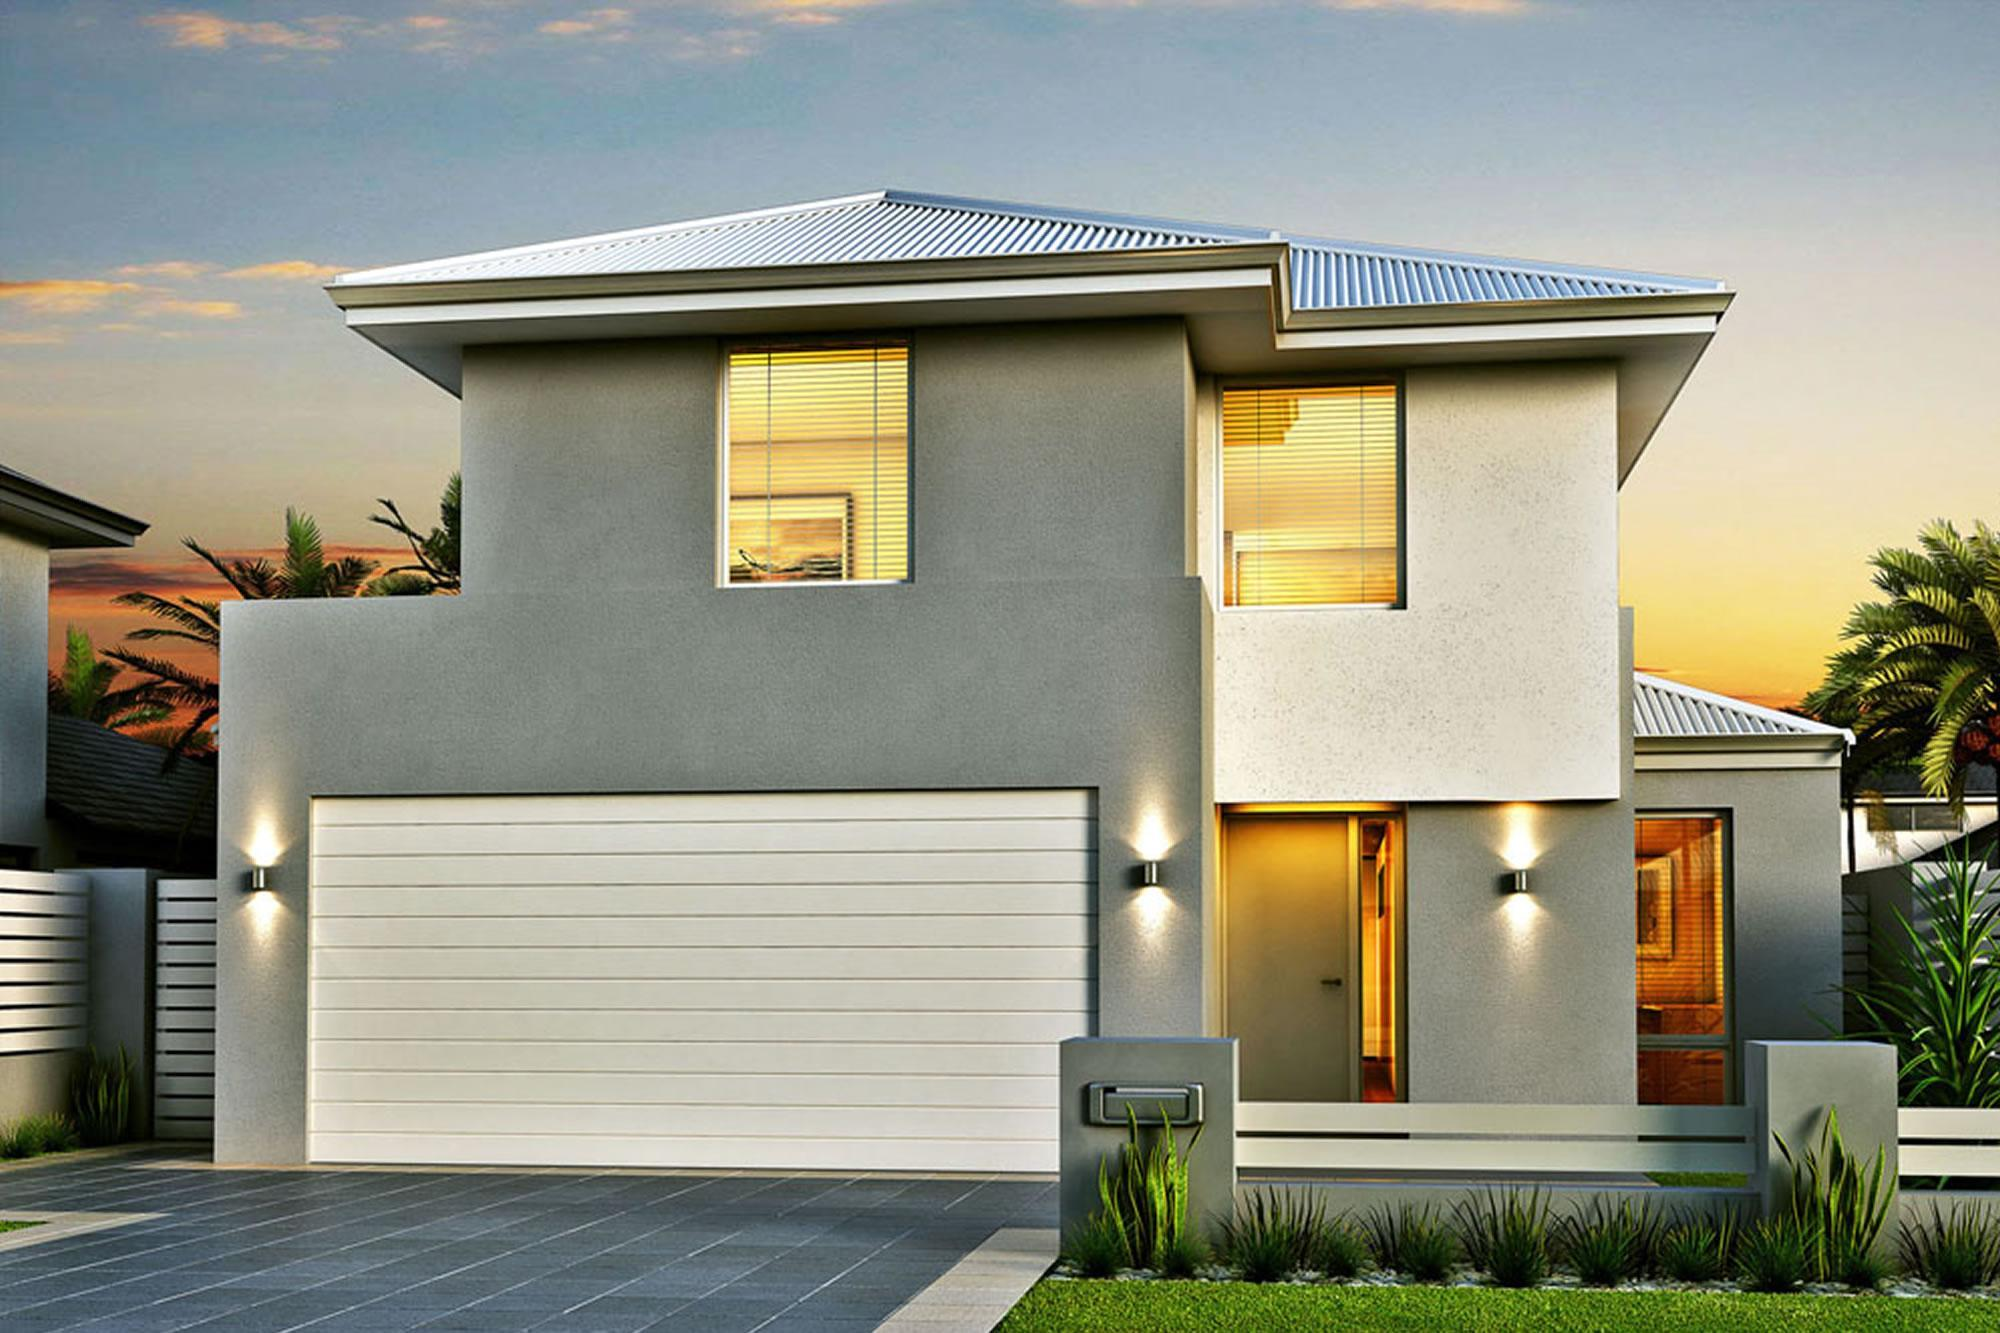 5 advantages of narrow lot homes renowned homes for Narrow lot home builders perth